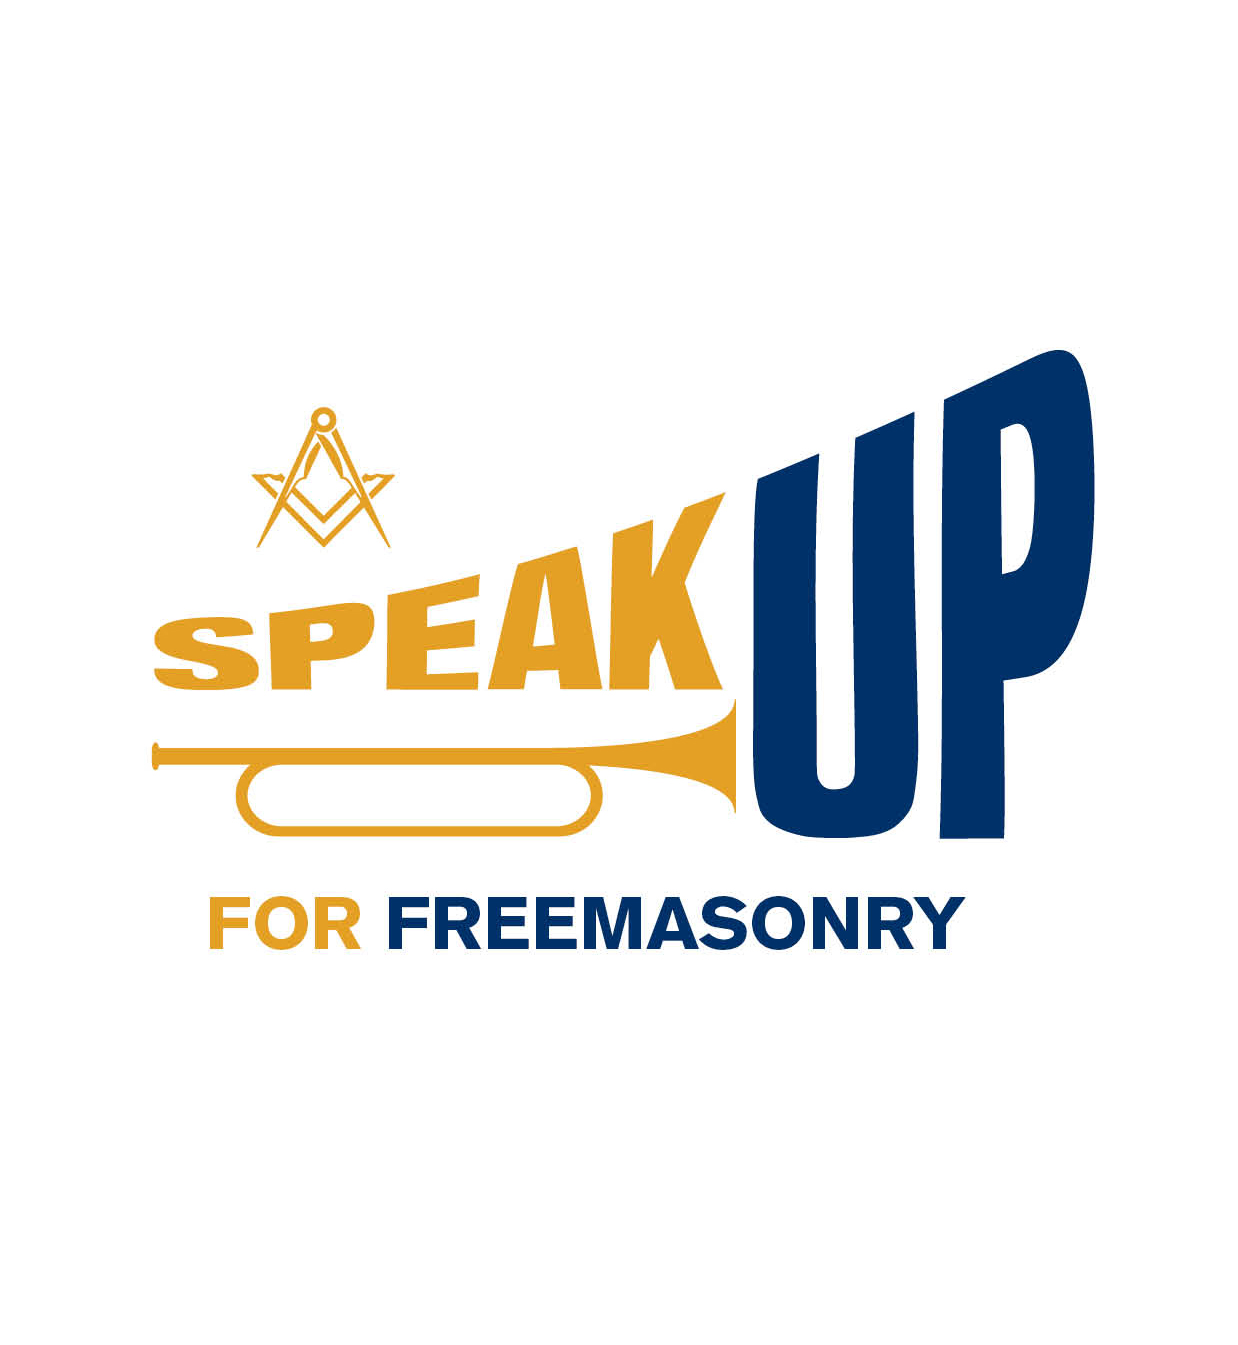 Speak up Trumpet logo - White background